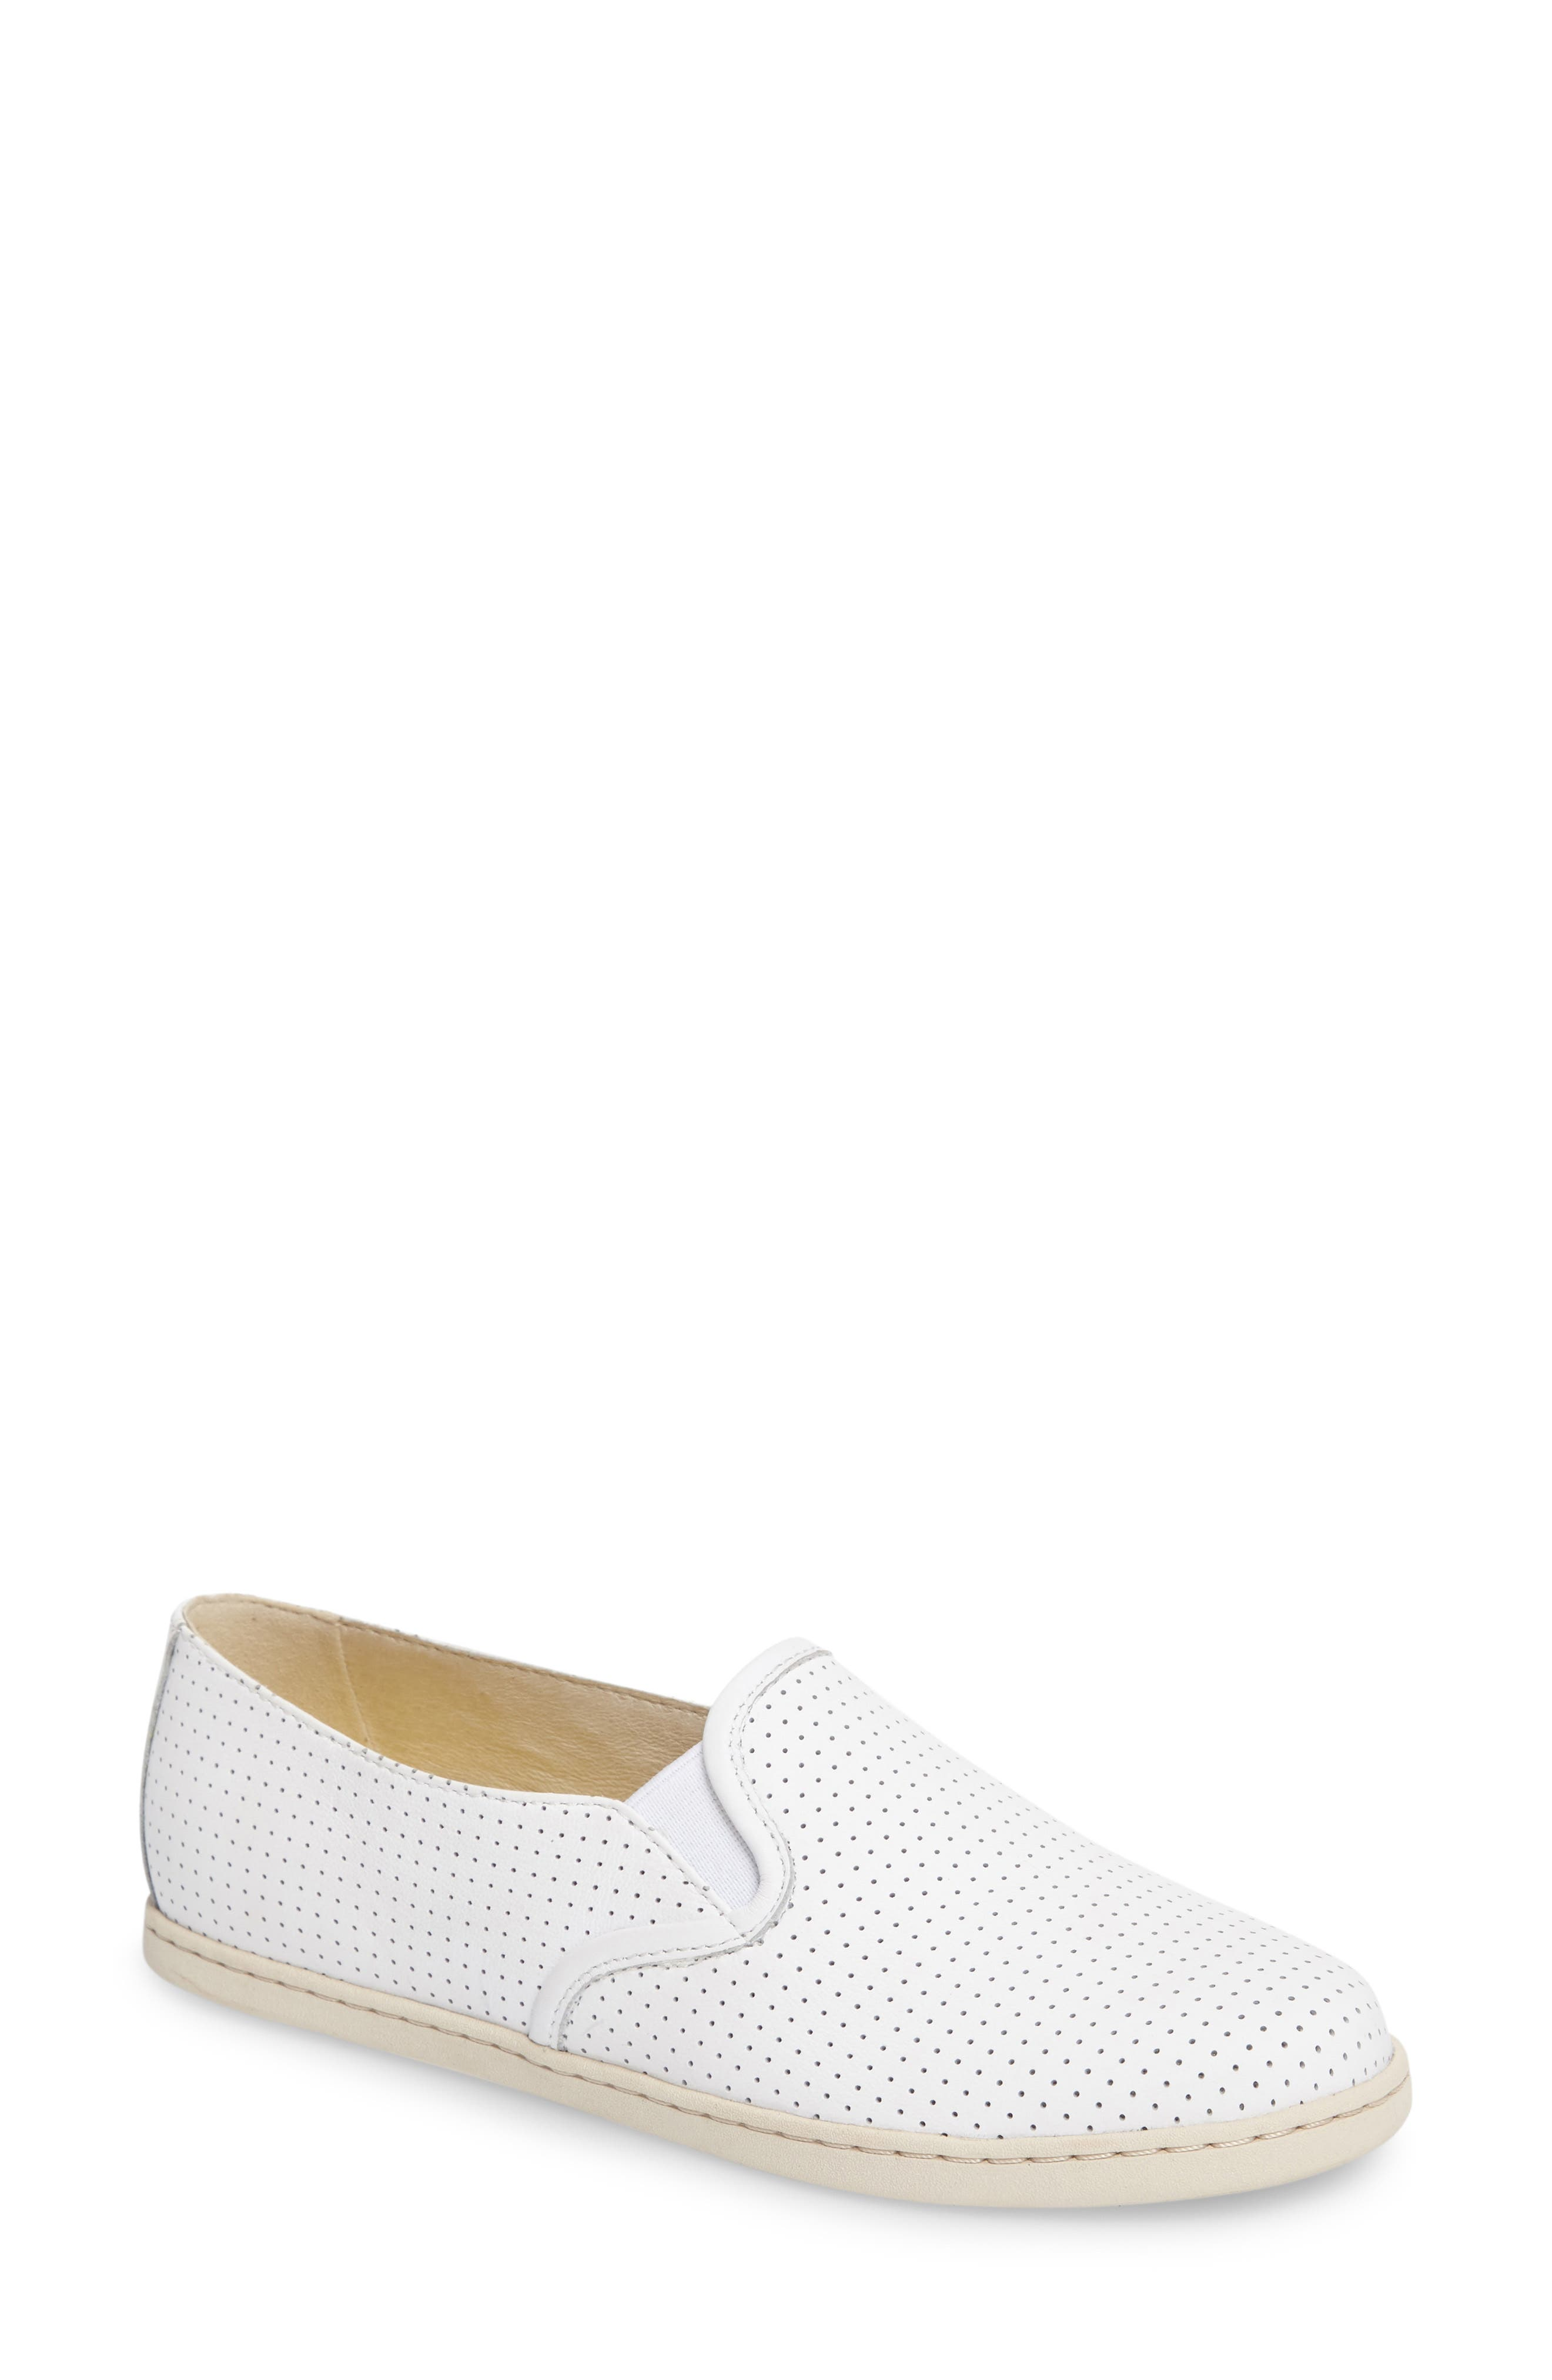 Uno Perforated Slip-On Sneaker,                             Main thumbnail 1, color,                             100